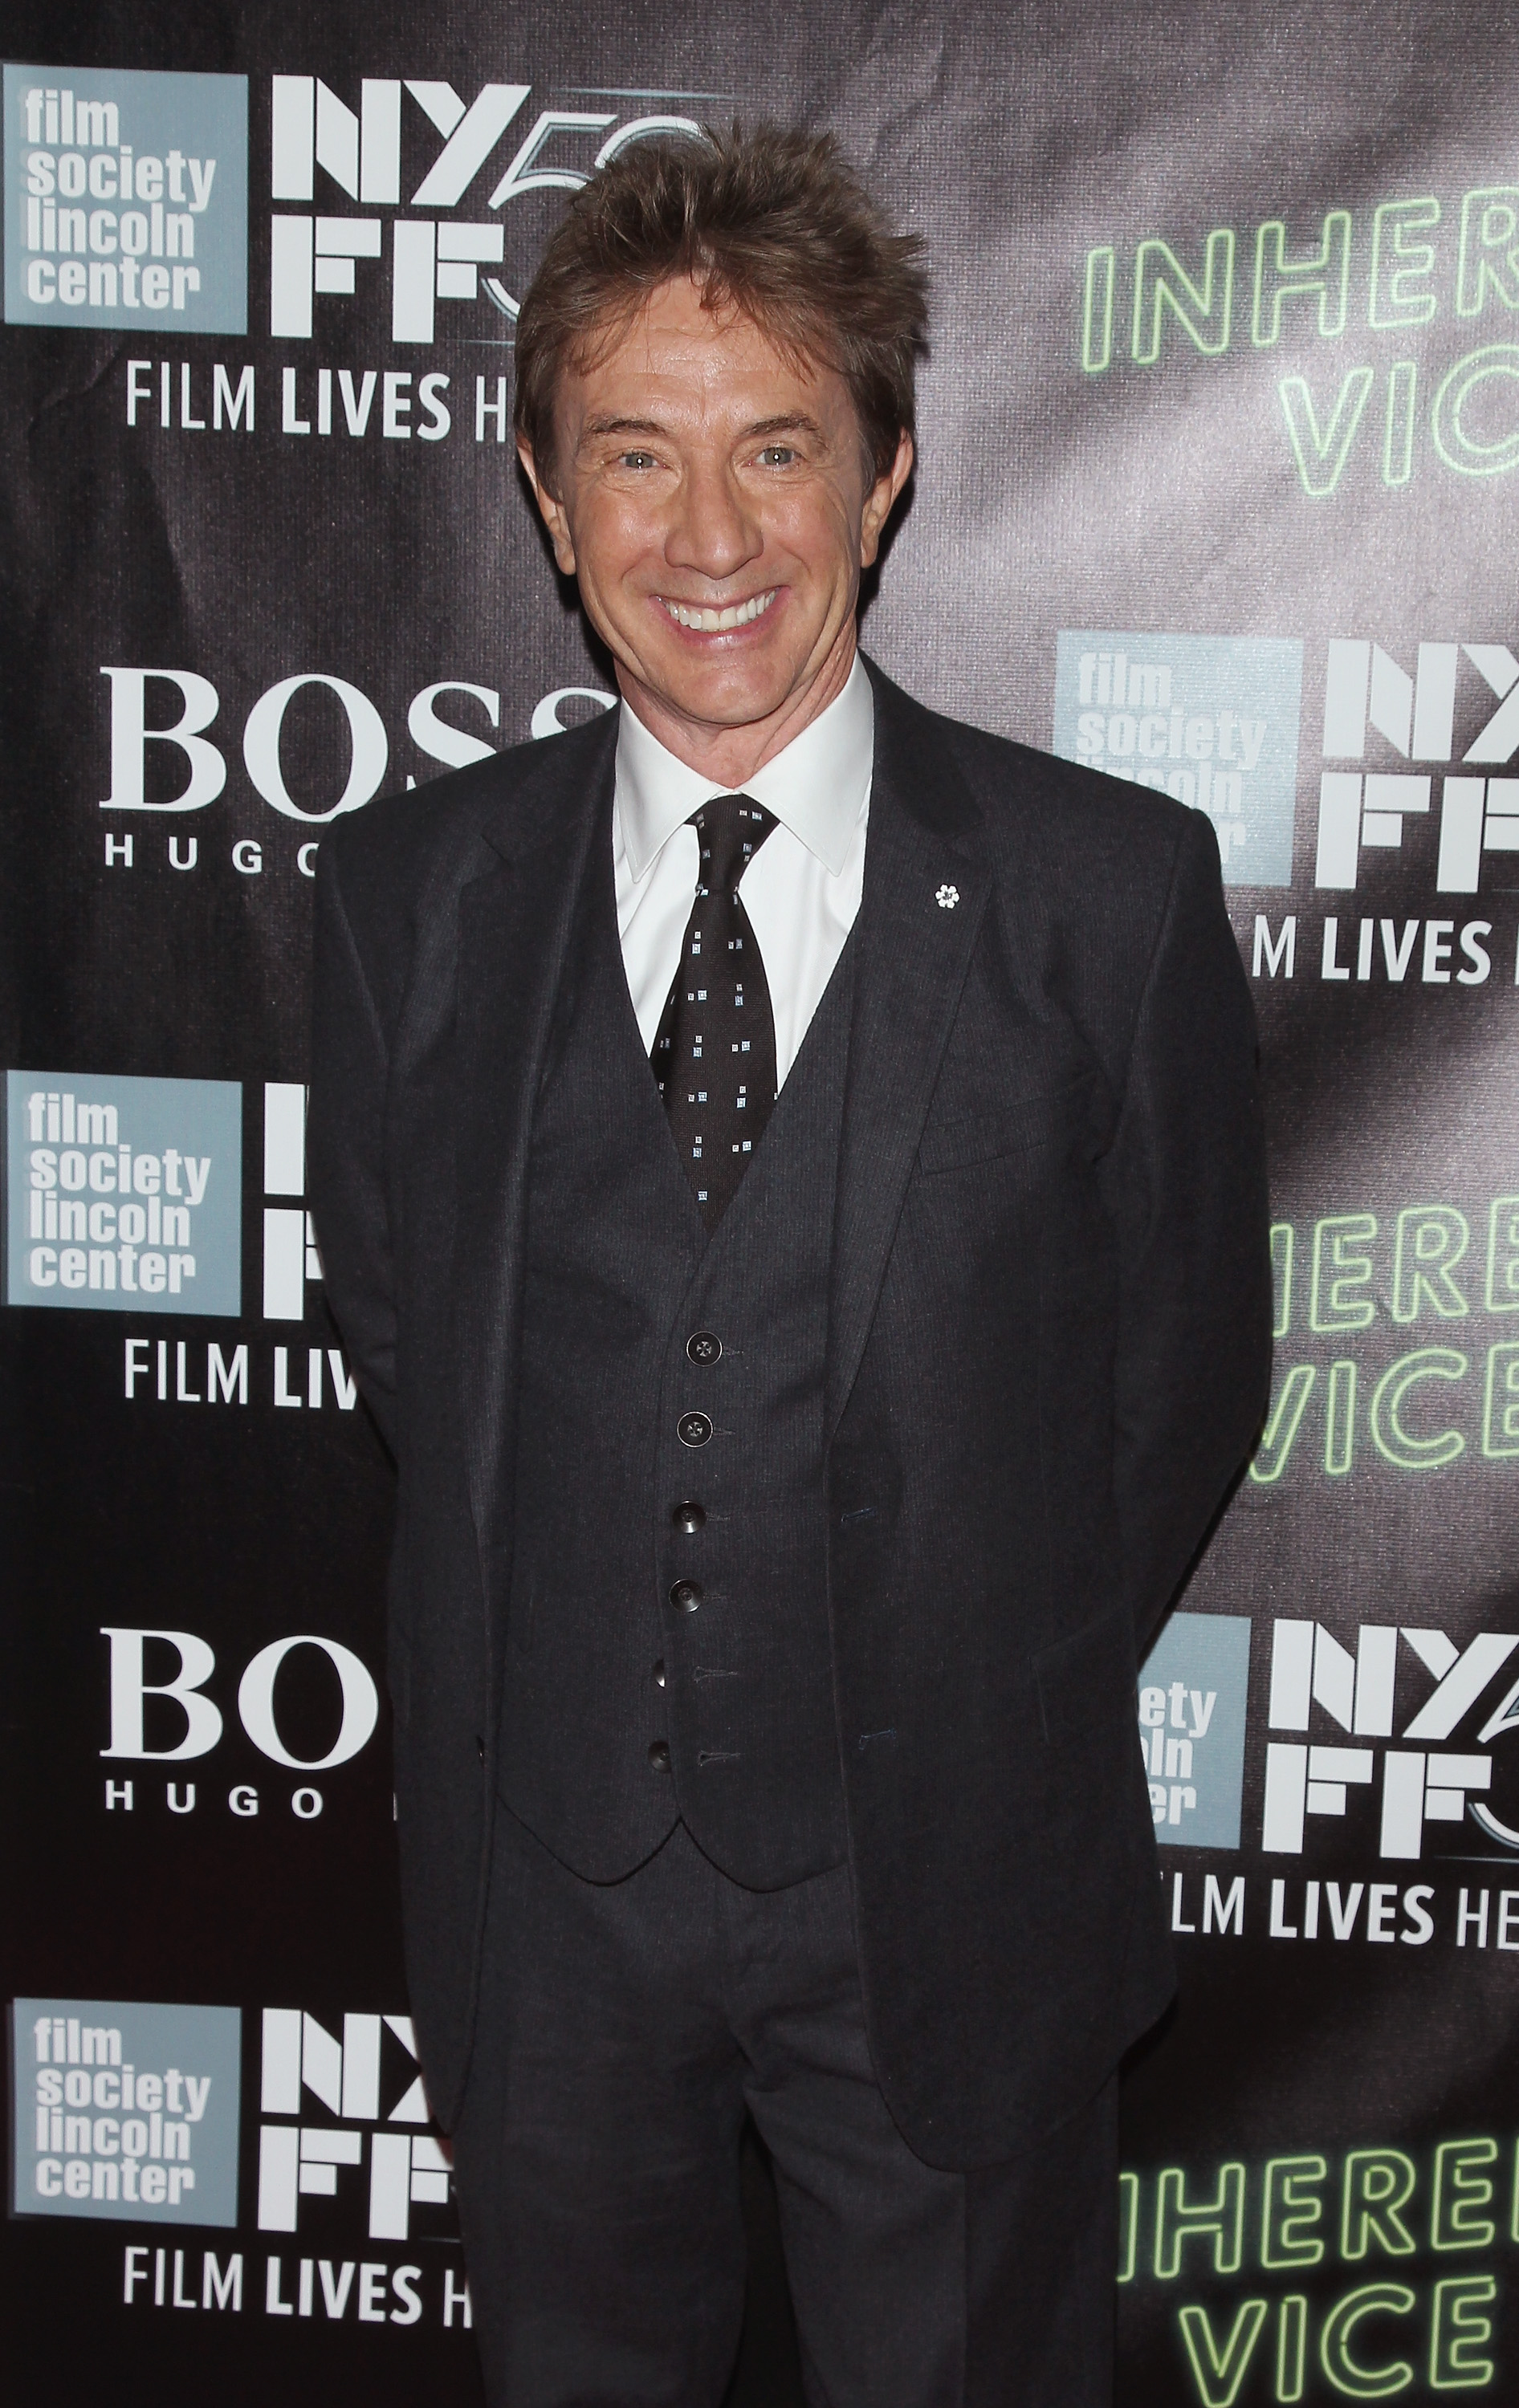 Actor Martin Short during the 52nd New York Film Festival on October 4, 2014 in New York City.